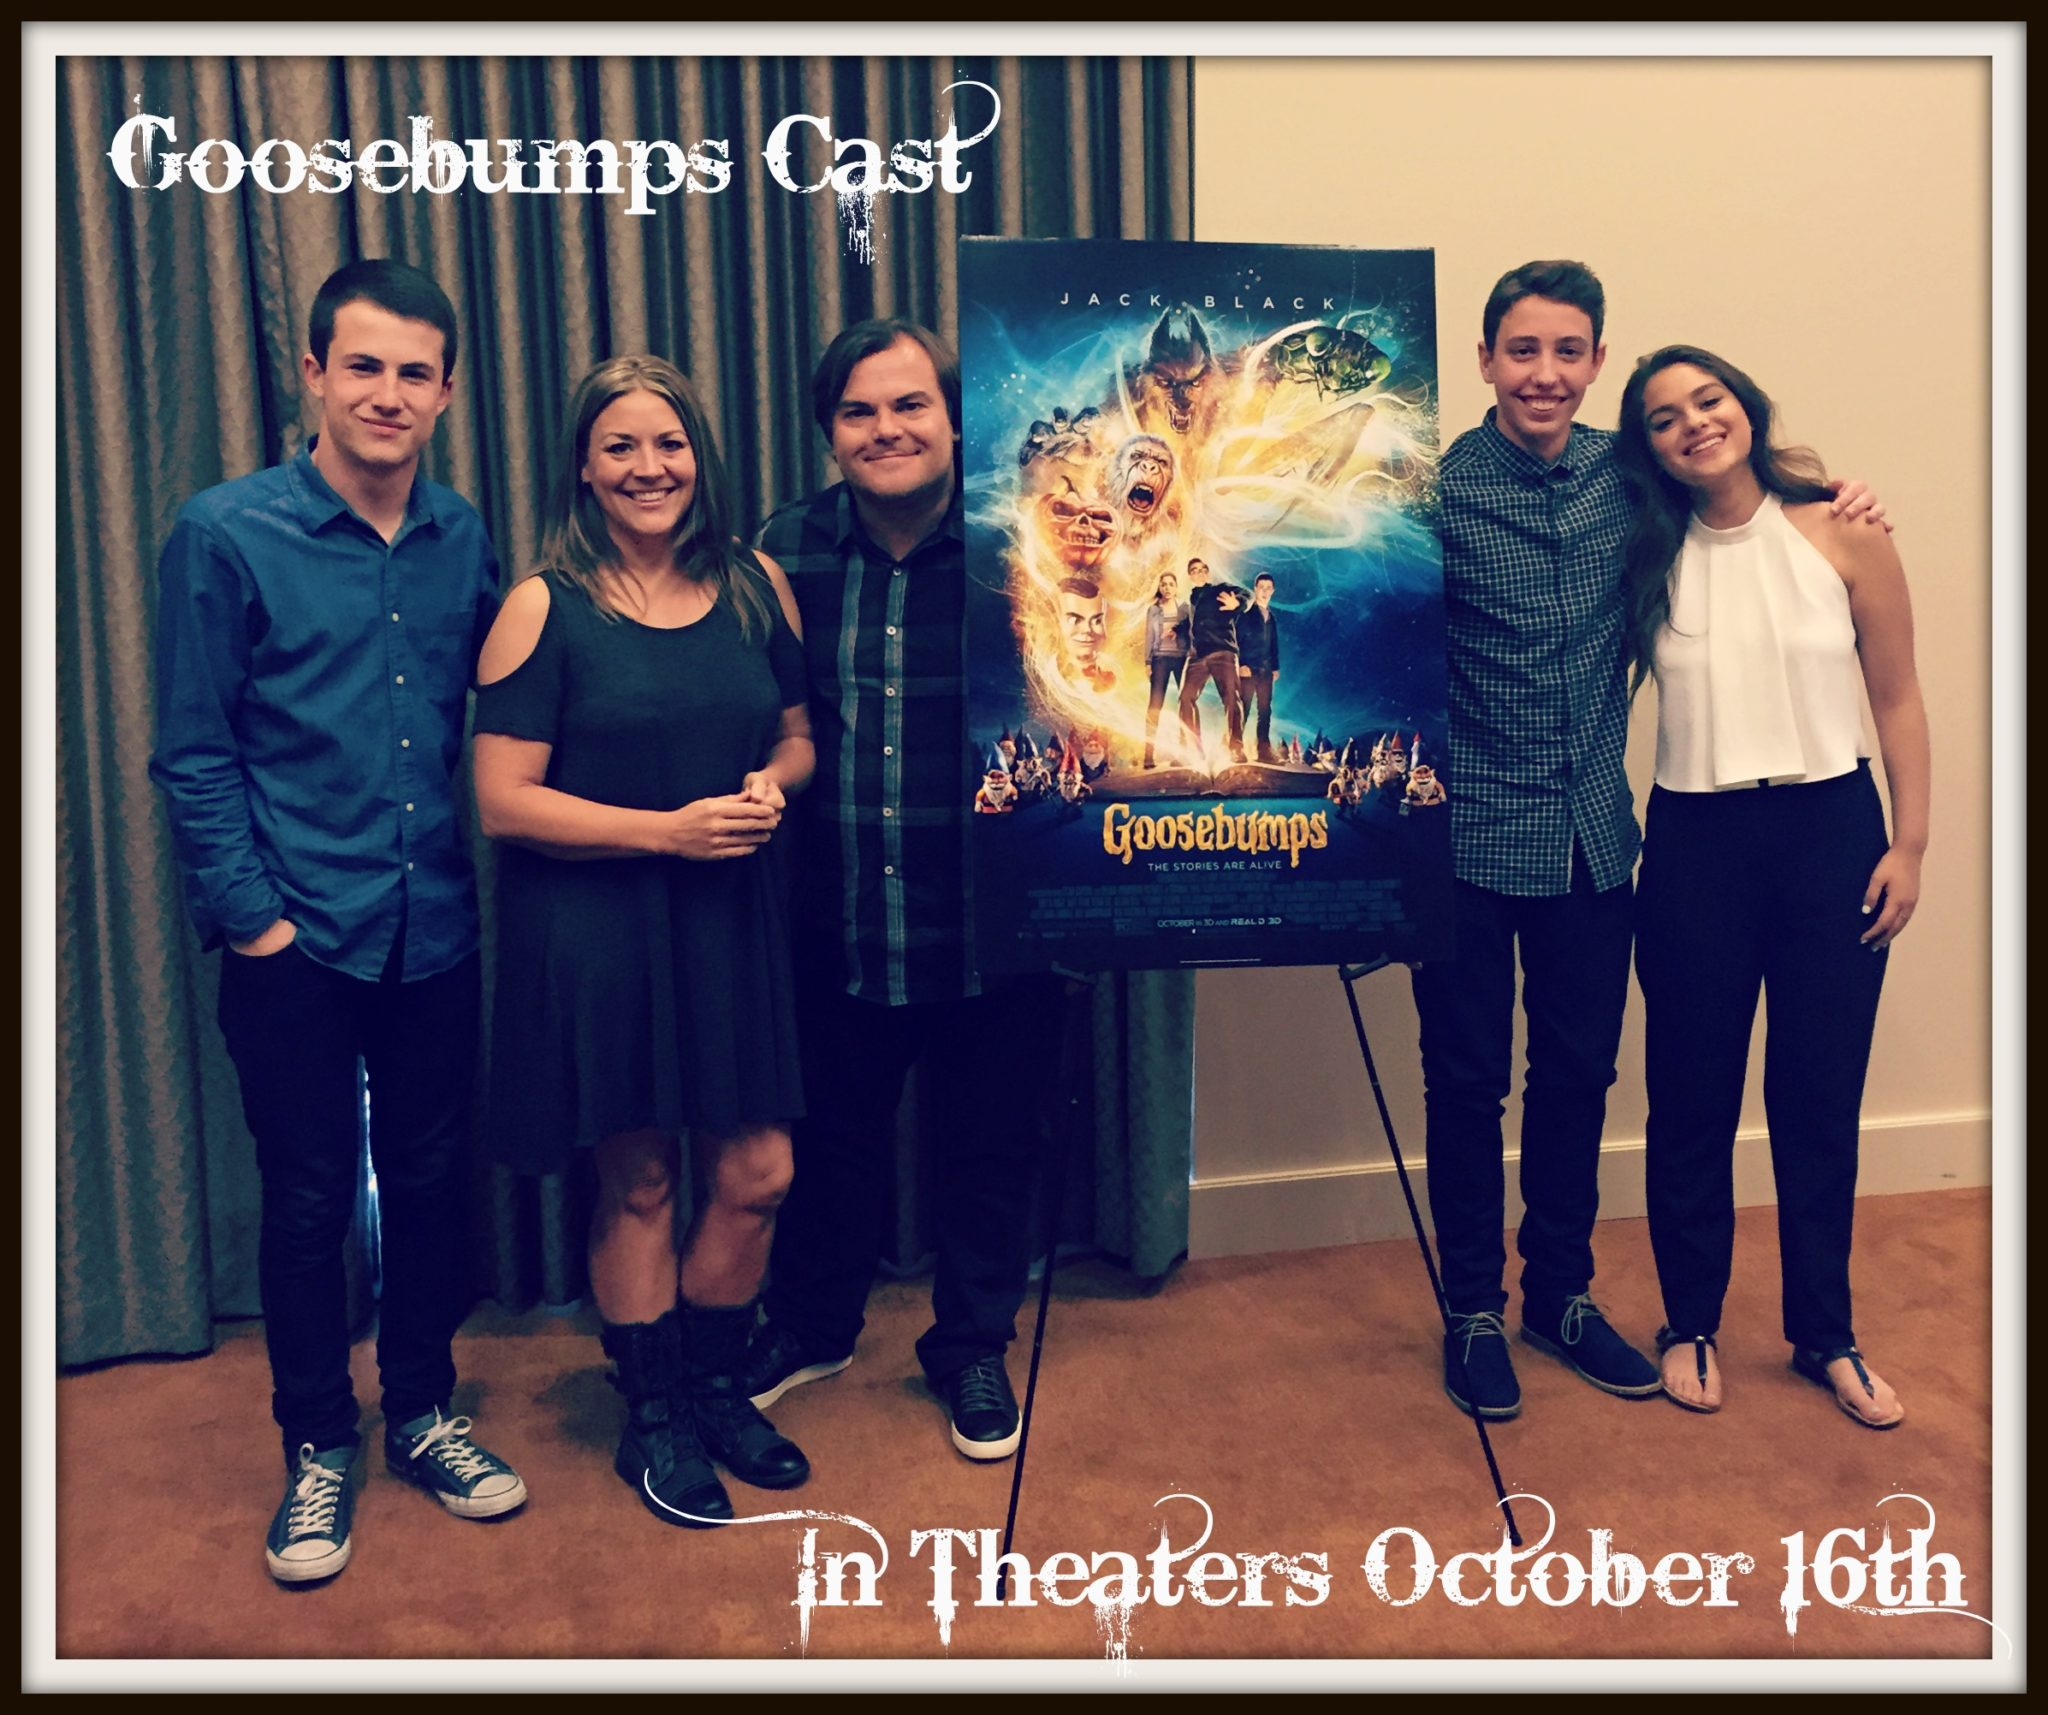 Sitting Down with the Cast of Goosebumps!